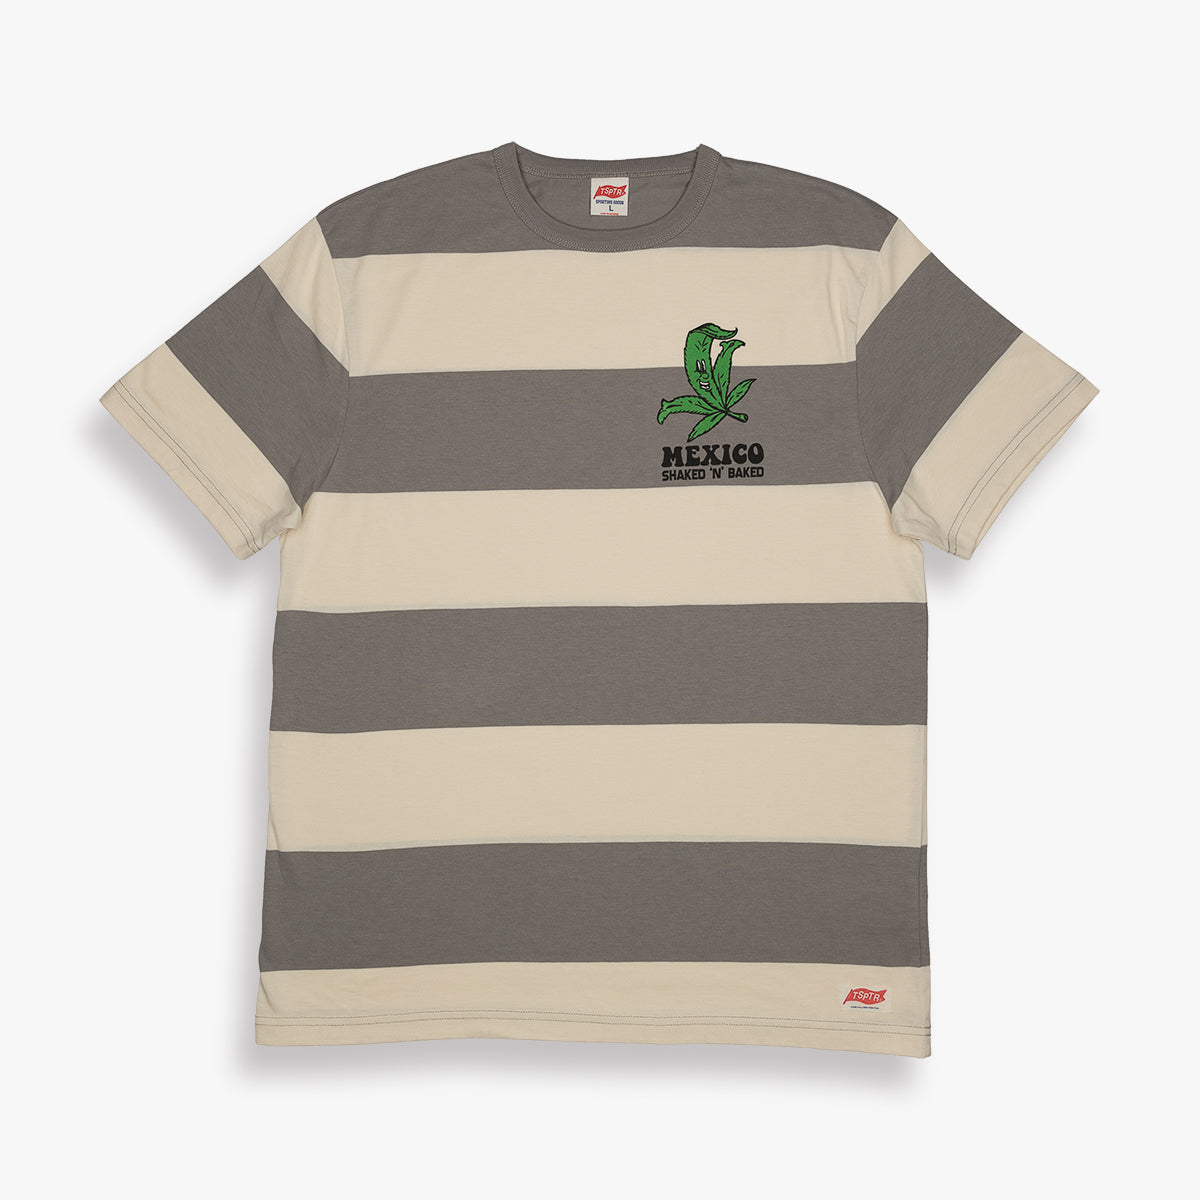 SHAKED N BAKED BORDER TEE